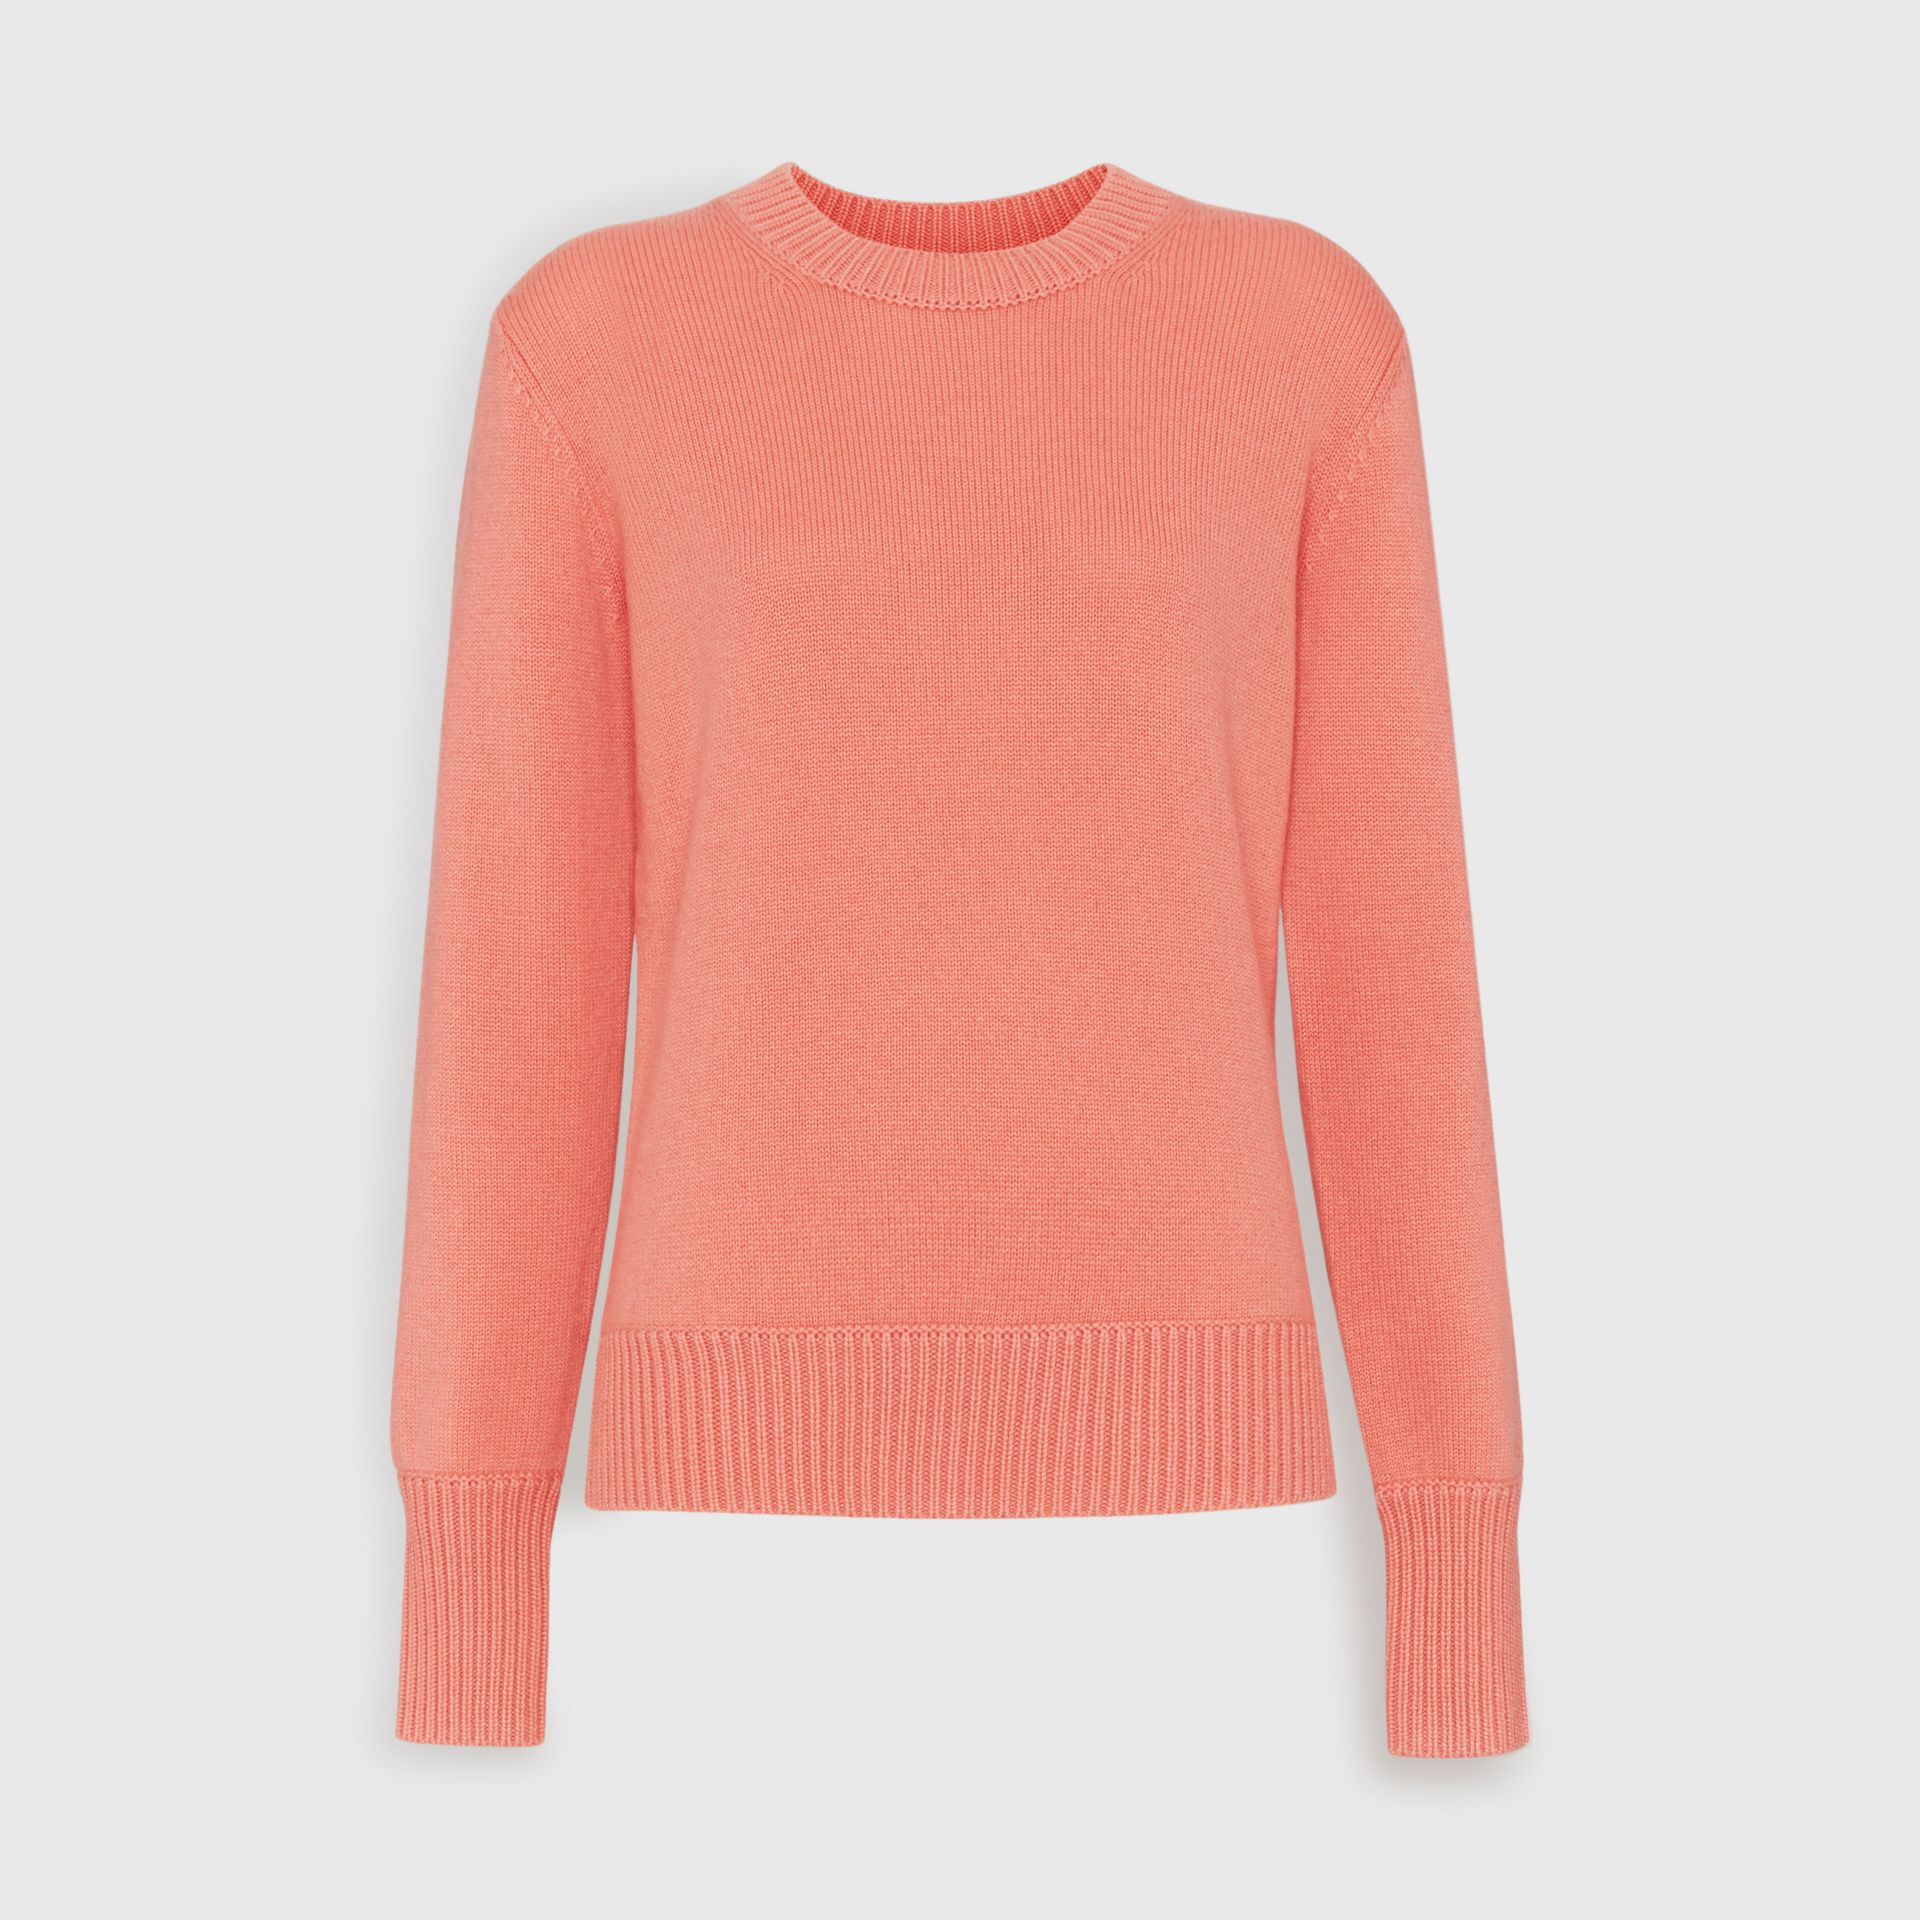 Archive Logo Appliqué Cashmere Sweater in Bright Coral Pink - Women | Burberry United States - gallery image 3